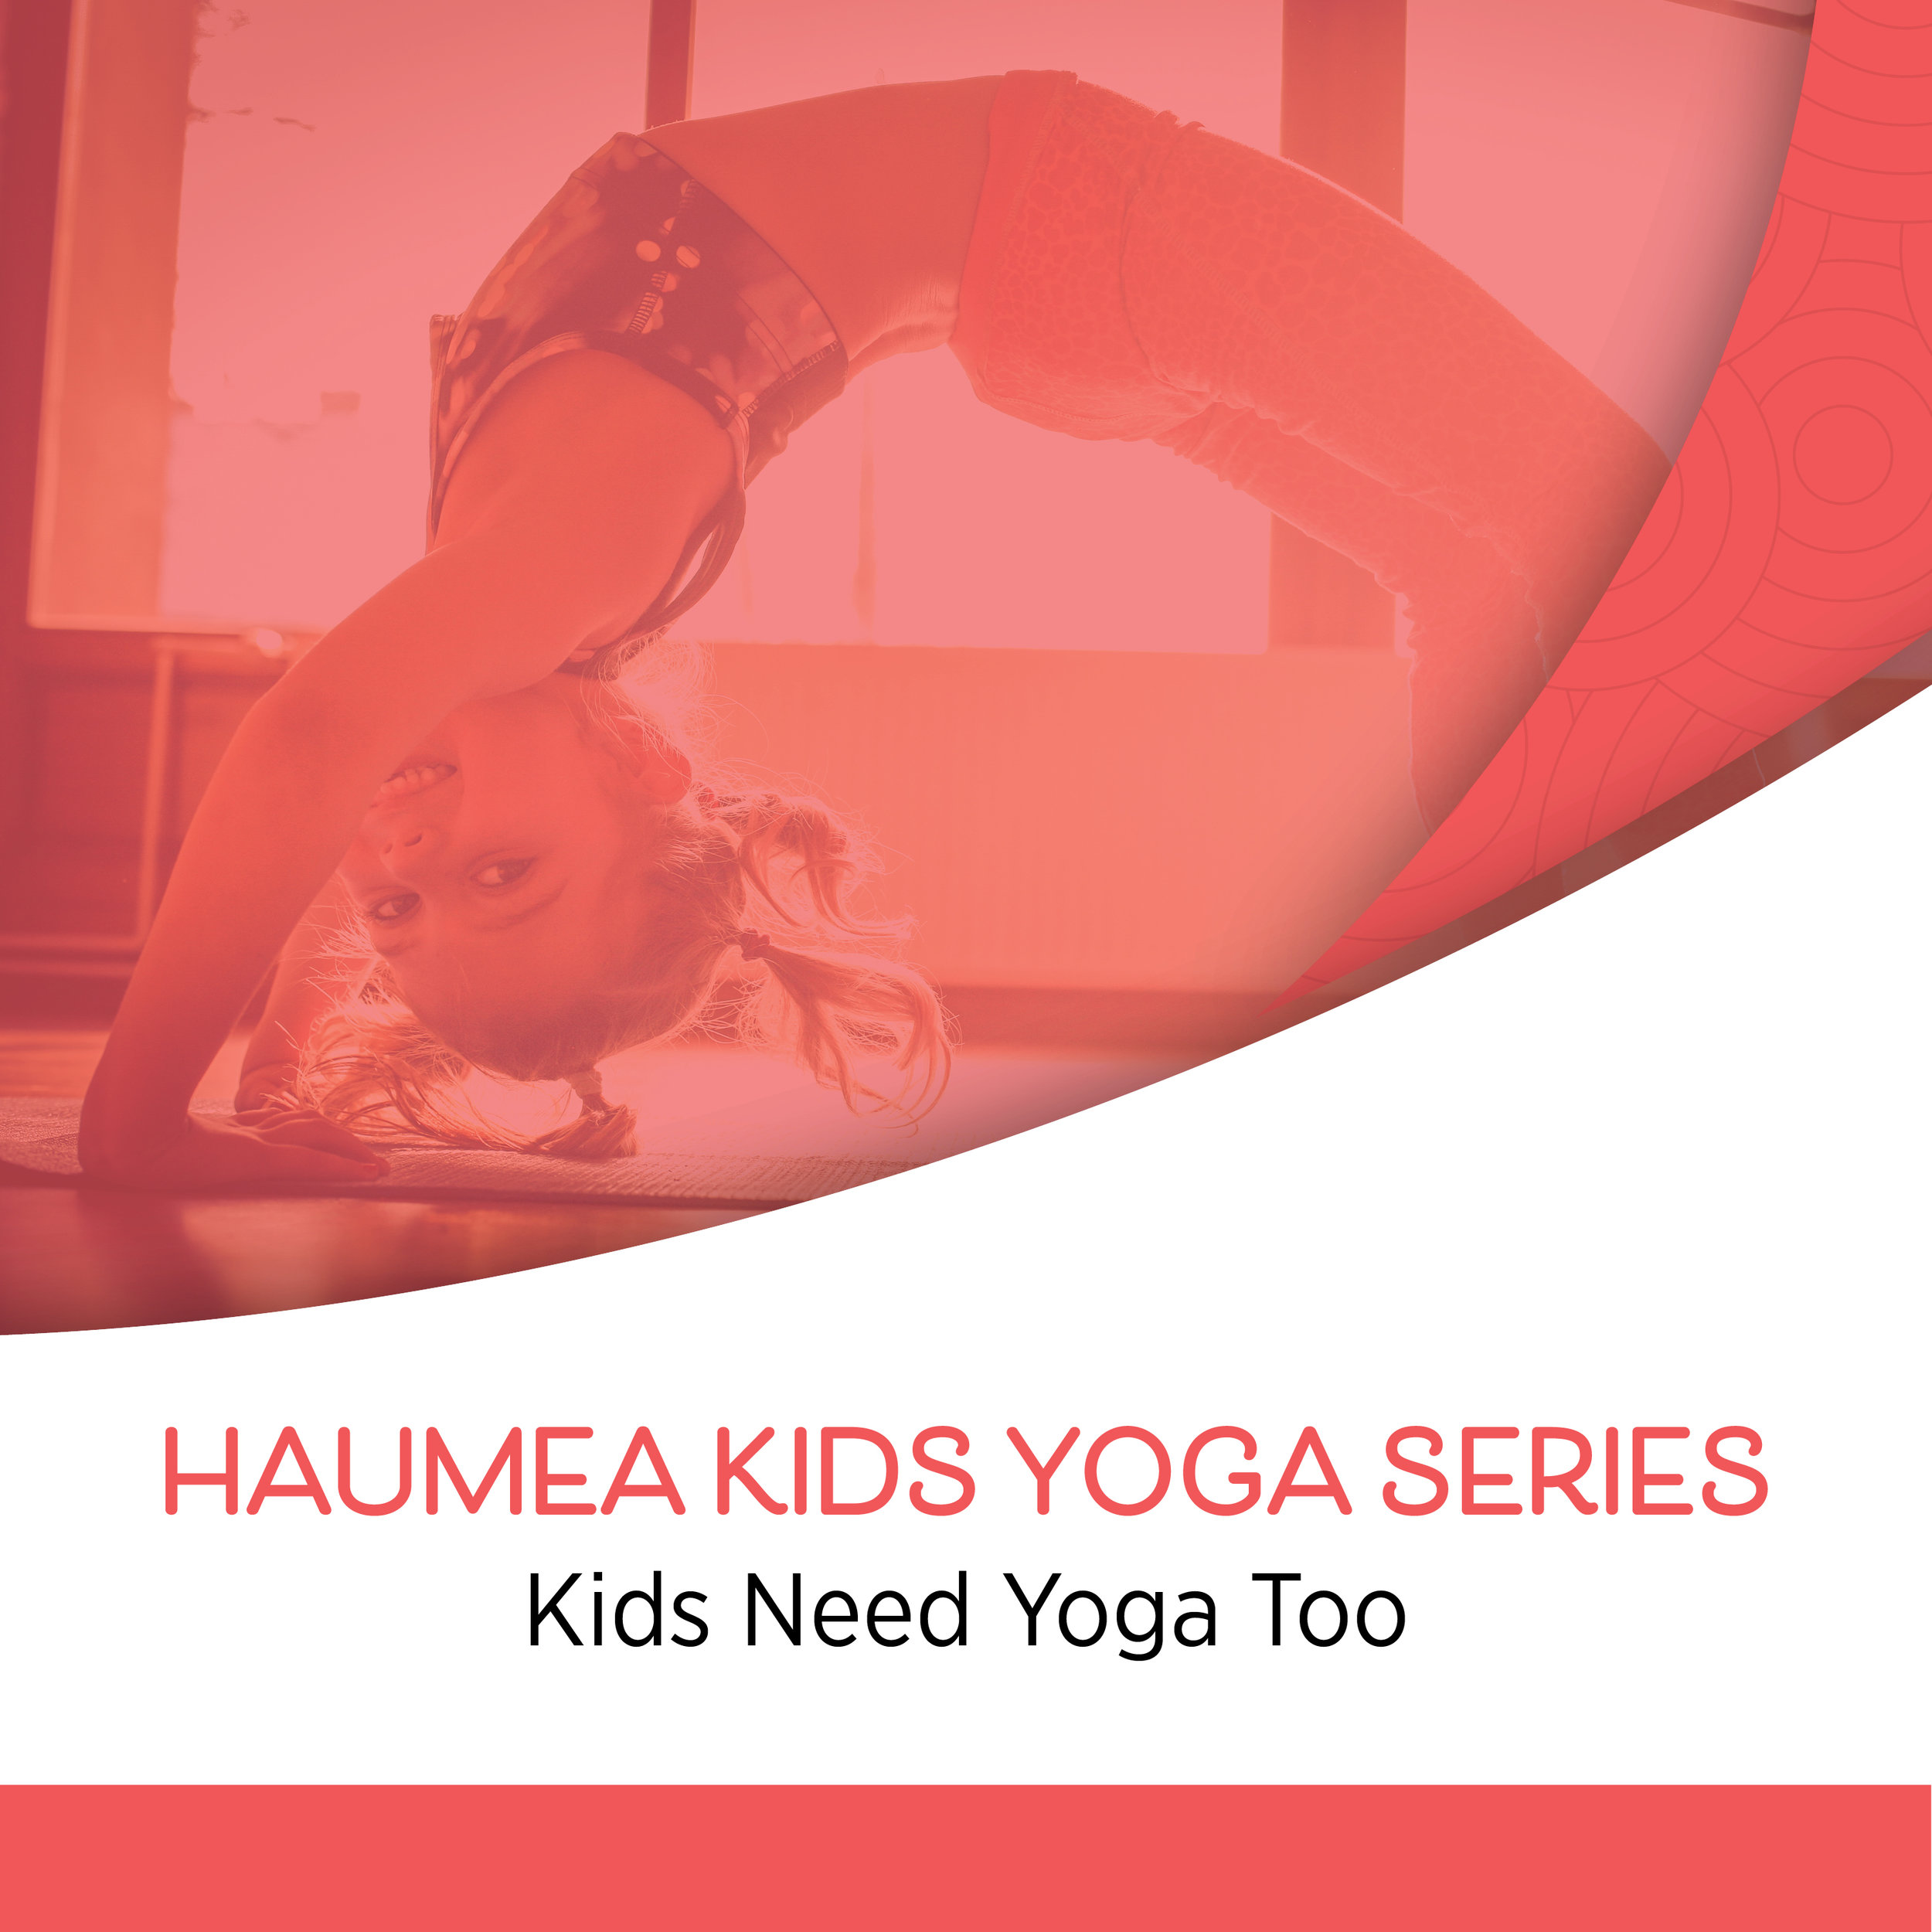 Haumea_2019_Haumea Kids Yoga Series_Web.jpg